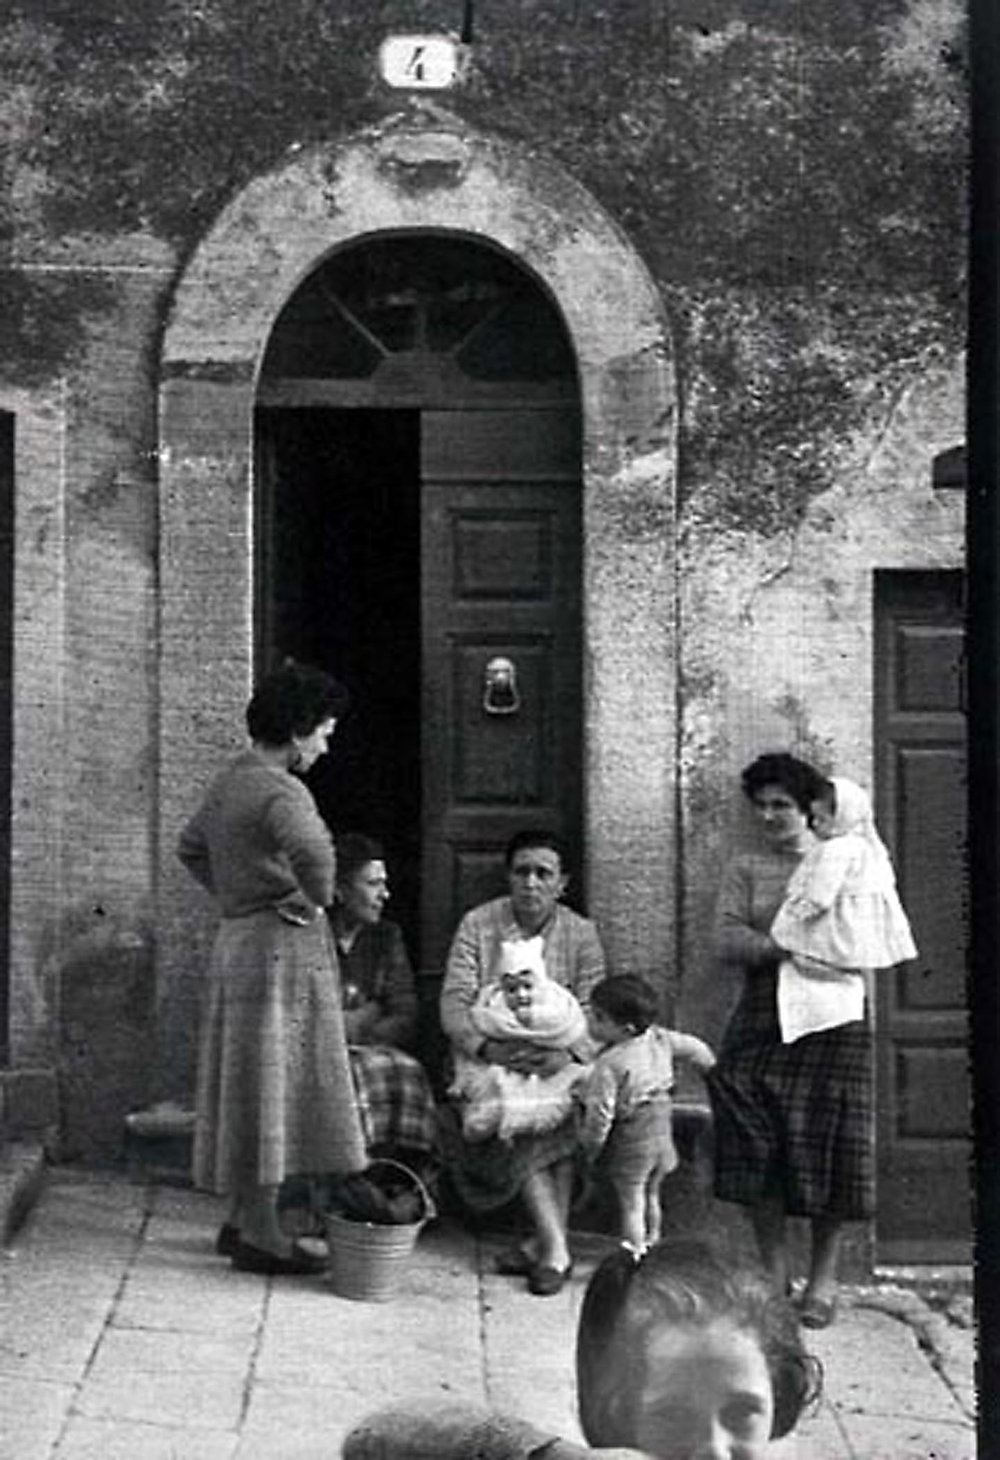 HANNON_viewed_through_screen_window_(italy)_1958_11x14_high.jpg